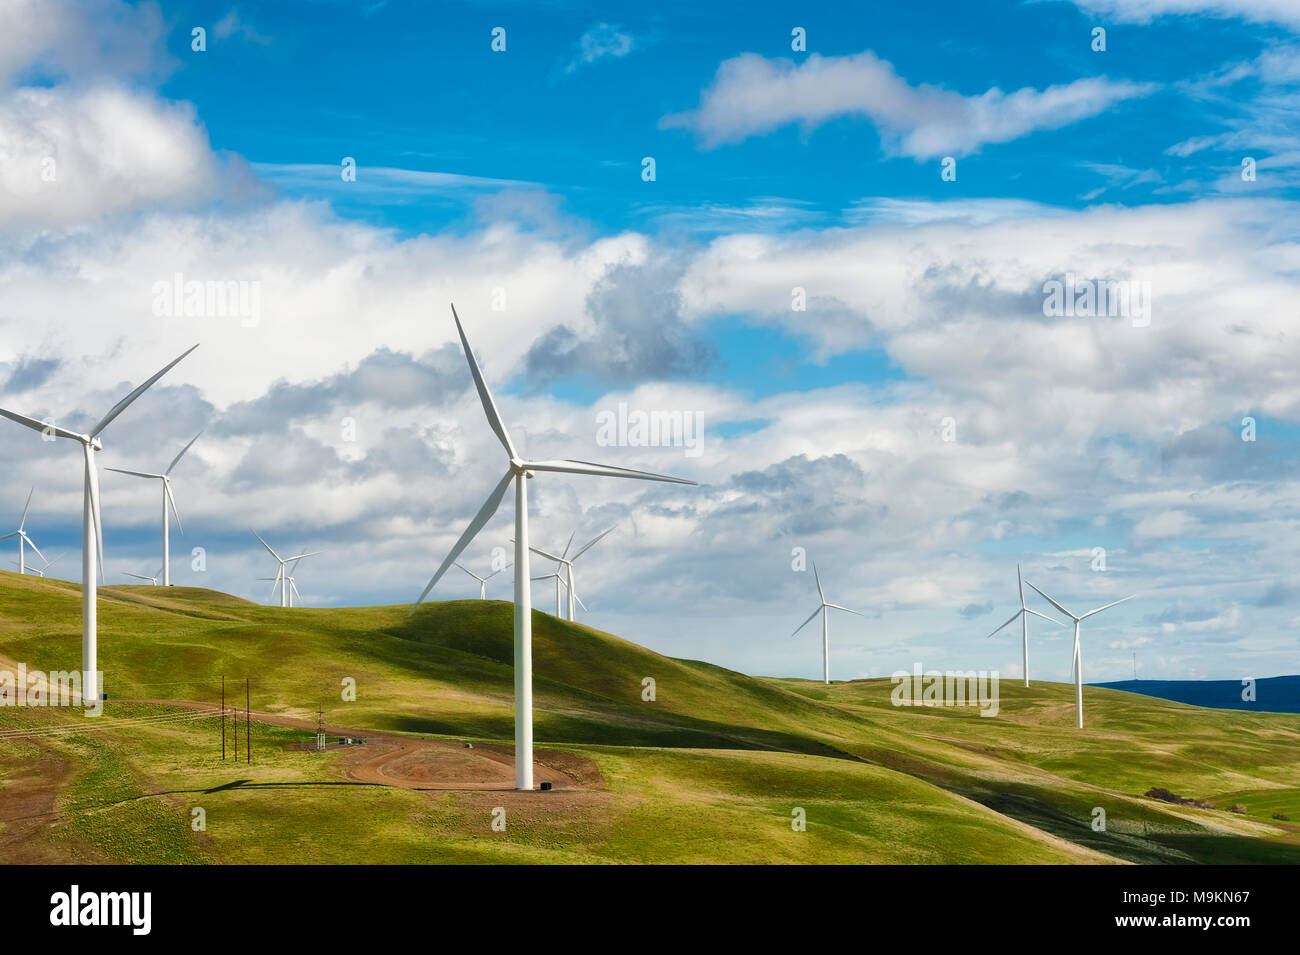 Wind Turbines stand tall and stark against the high desert landscape of rolling hills in the Columbia River Gorge - Stock Image